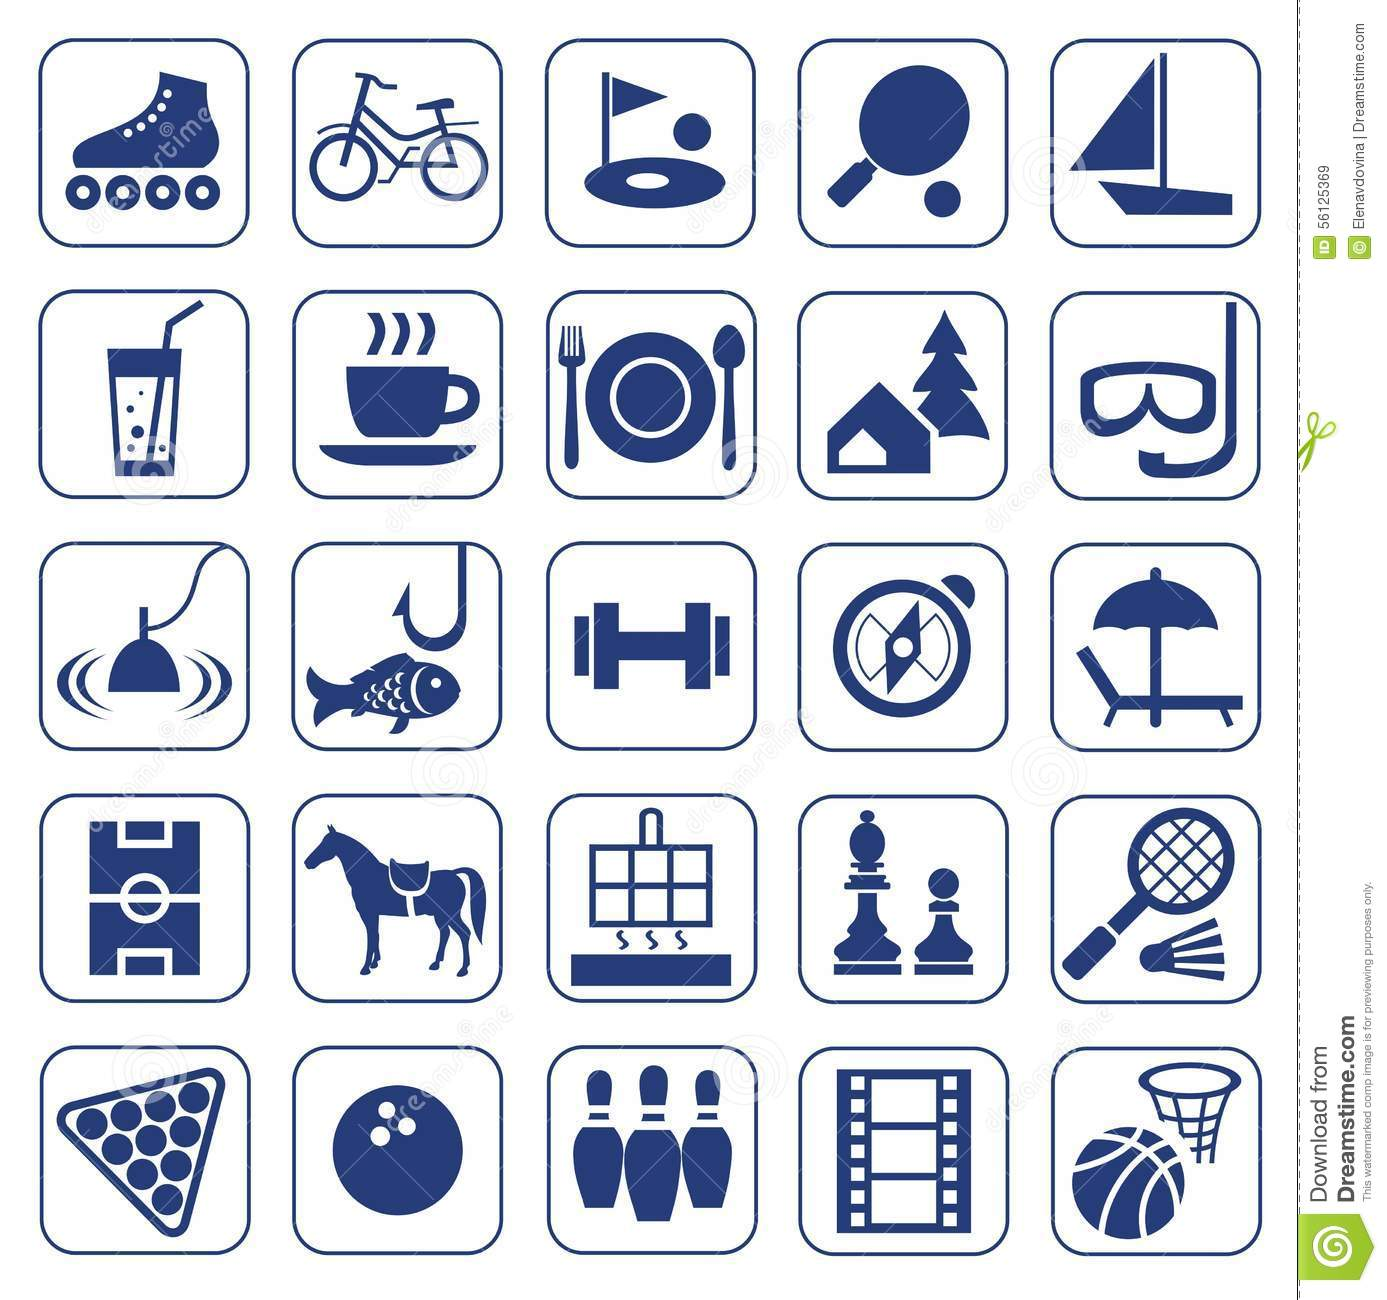 Icons, leisure, entertainment, leisure, Hobbies, monochrome, flat.